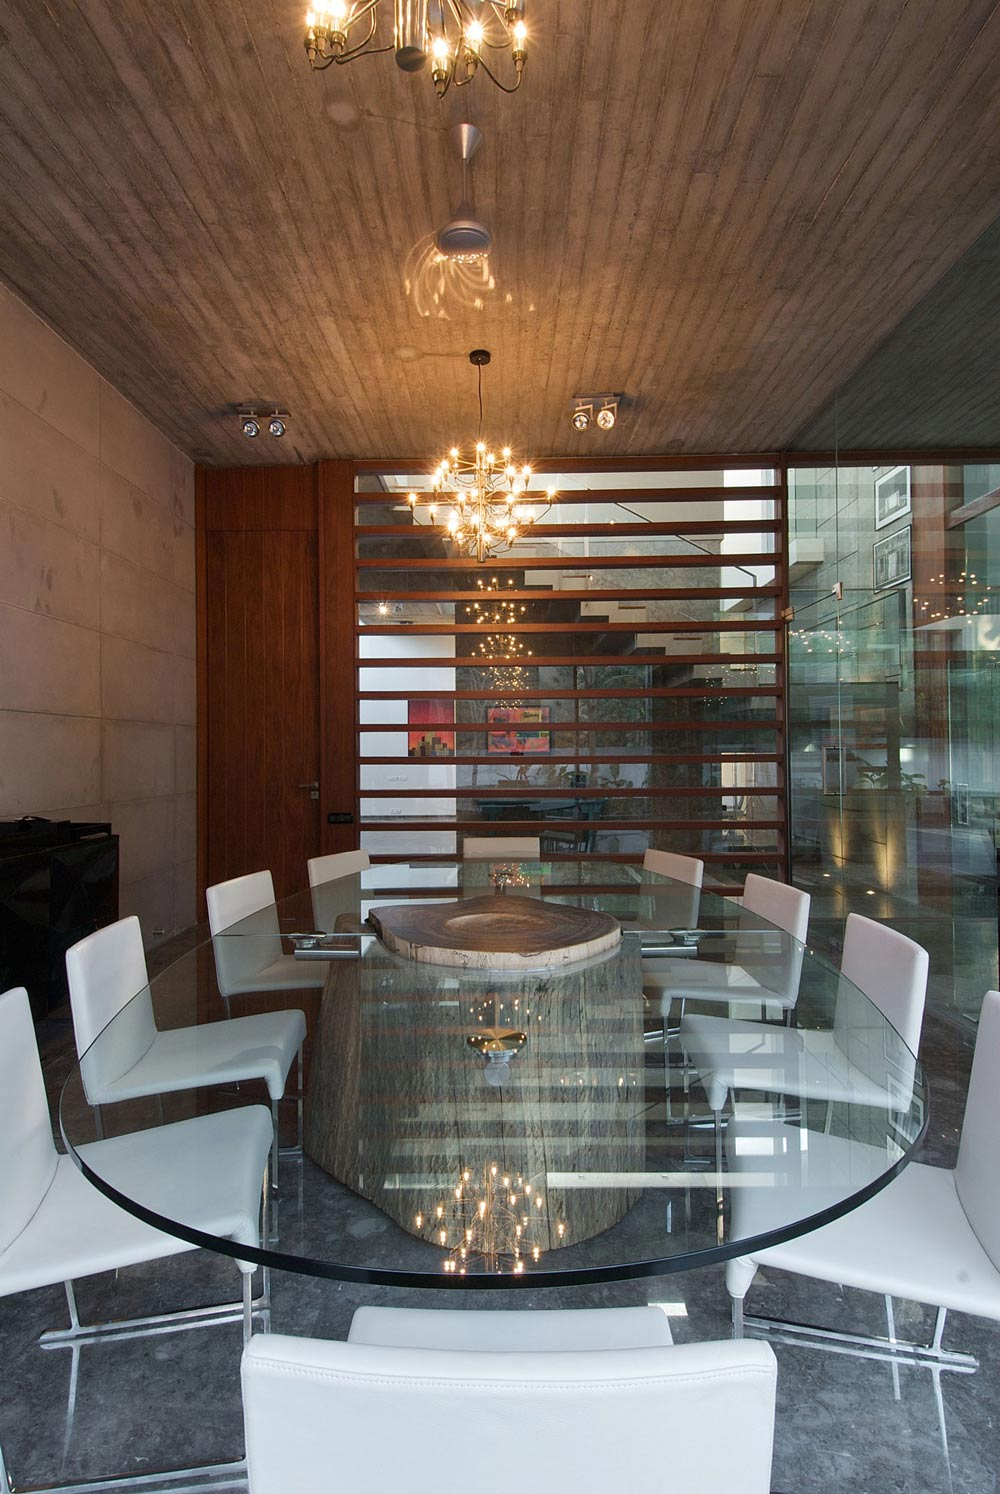 Glass Dining Table, White Chairs, Poona House in Mumbai, India by Rajiv Saini